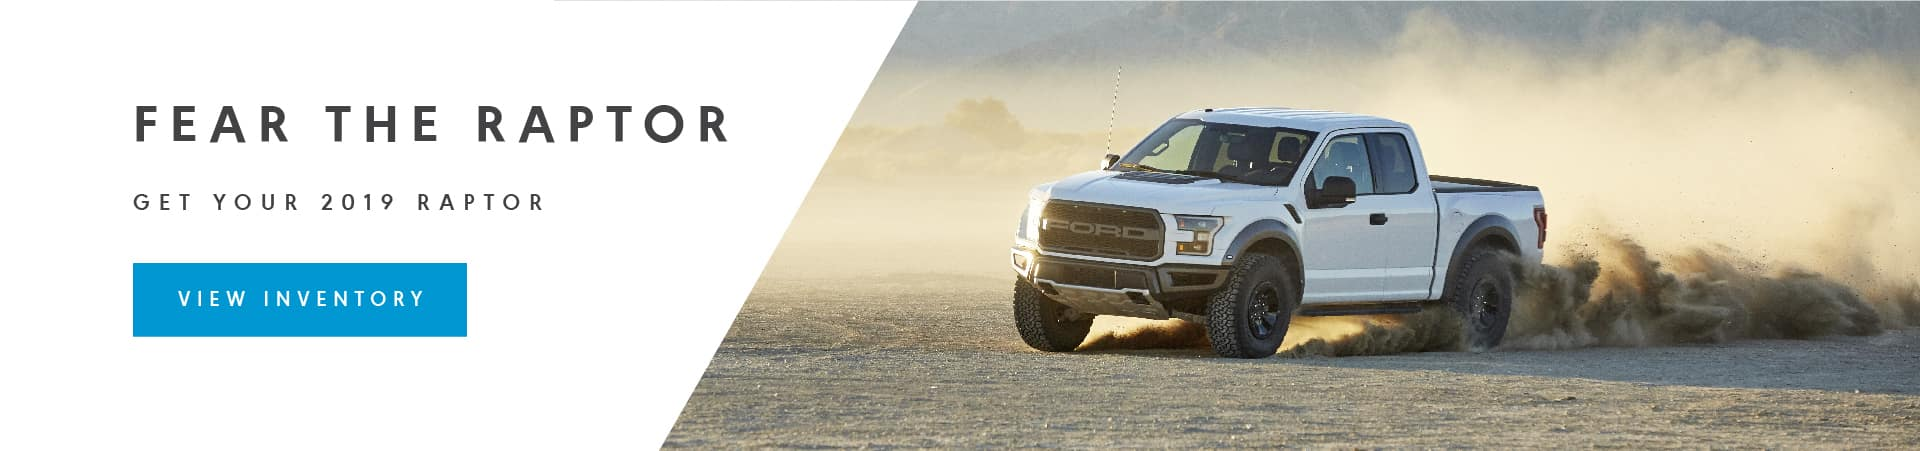 White 2019 Raptor rips up some dirt.